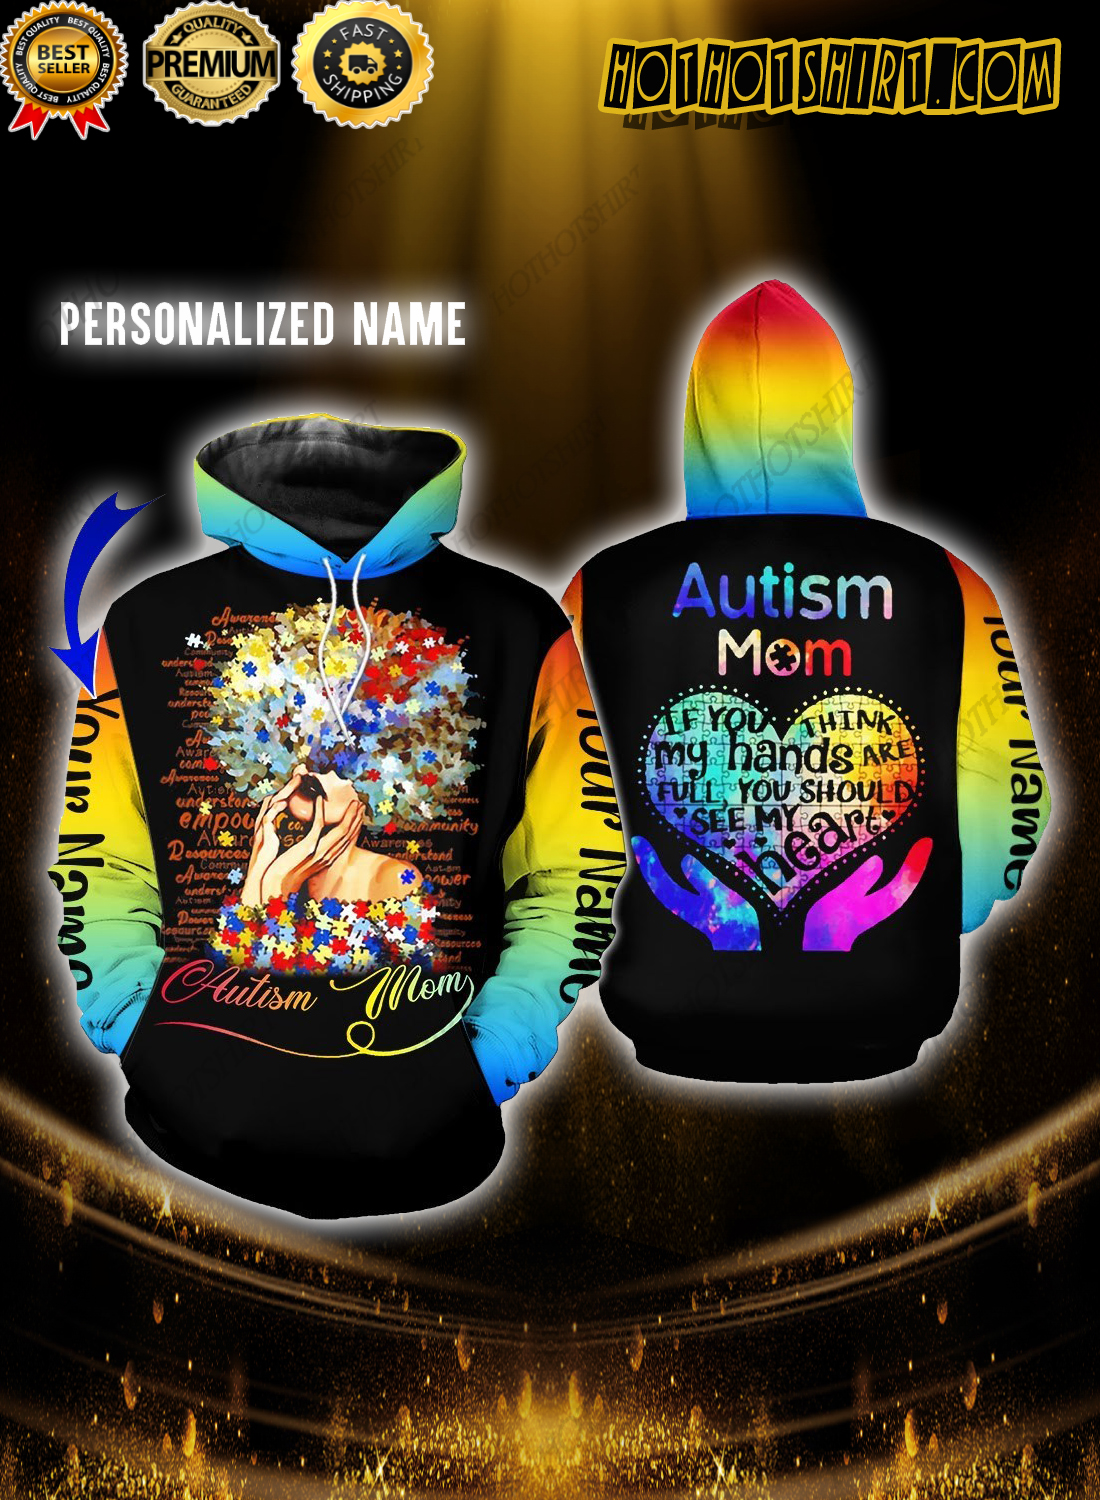 Personalize Name Autism Mom If You Think My Hands Are Full You Should See My Heart 3D Shirts